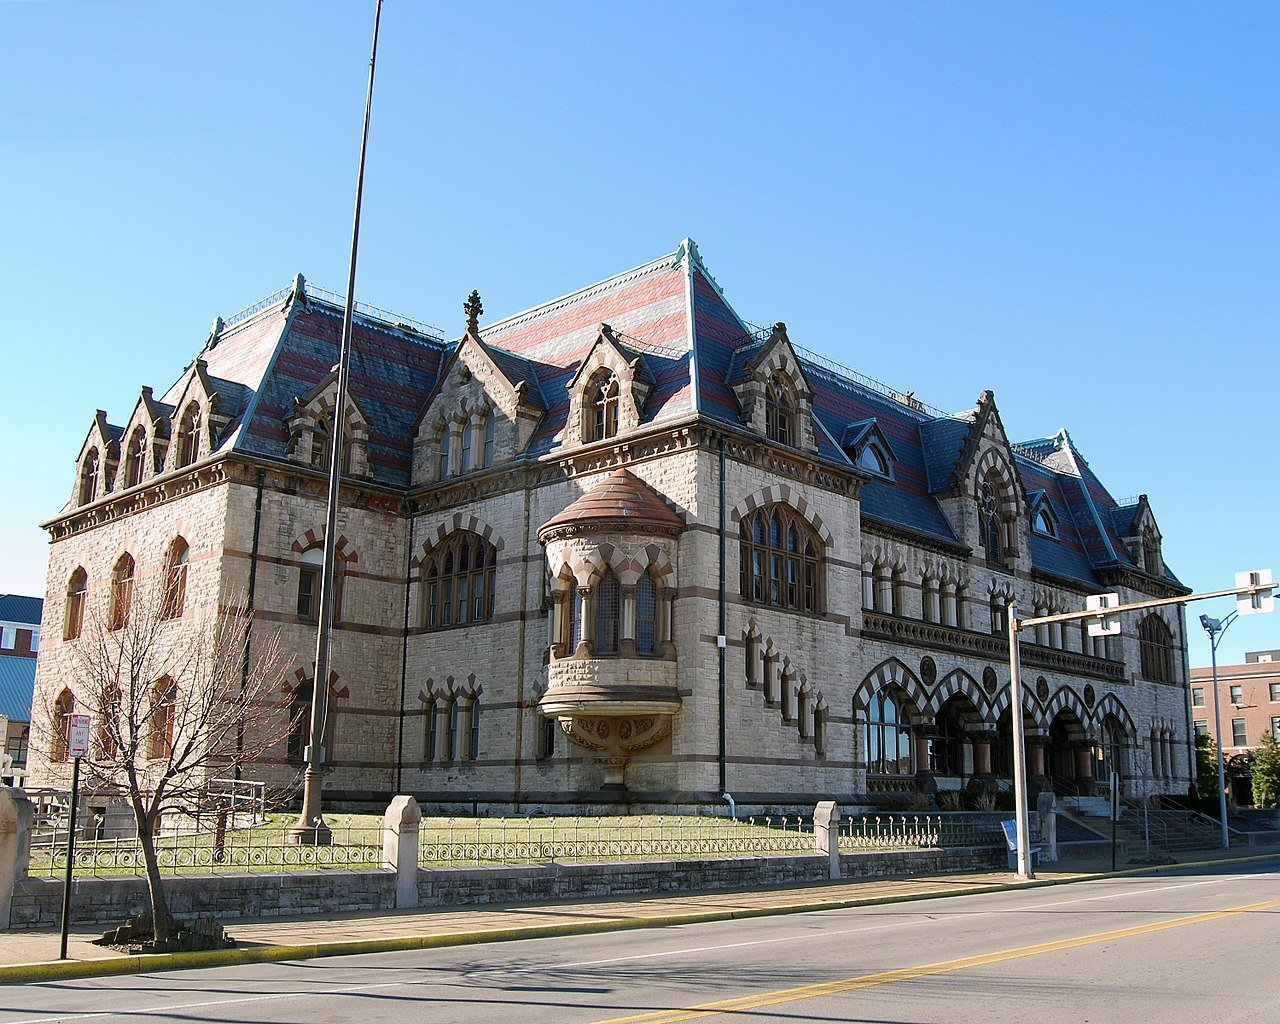 The Old United States Post Office was built in 1879 and is one of Evansville's most notable landmarks.